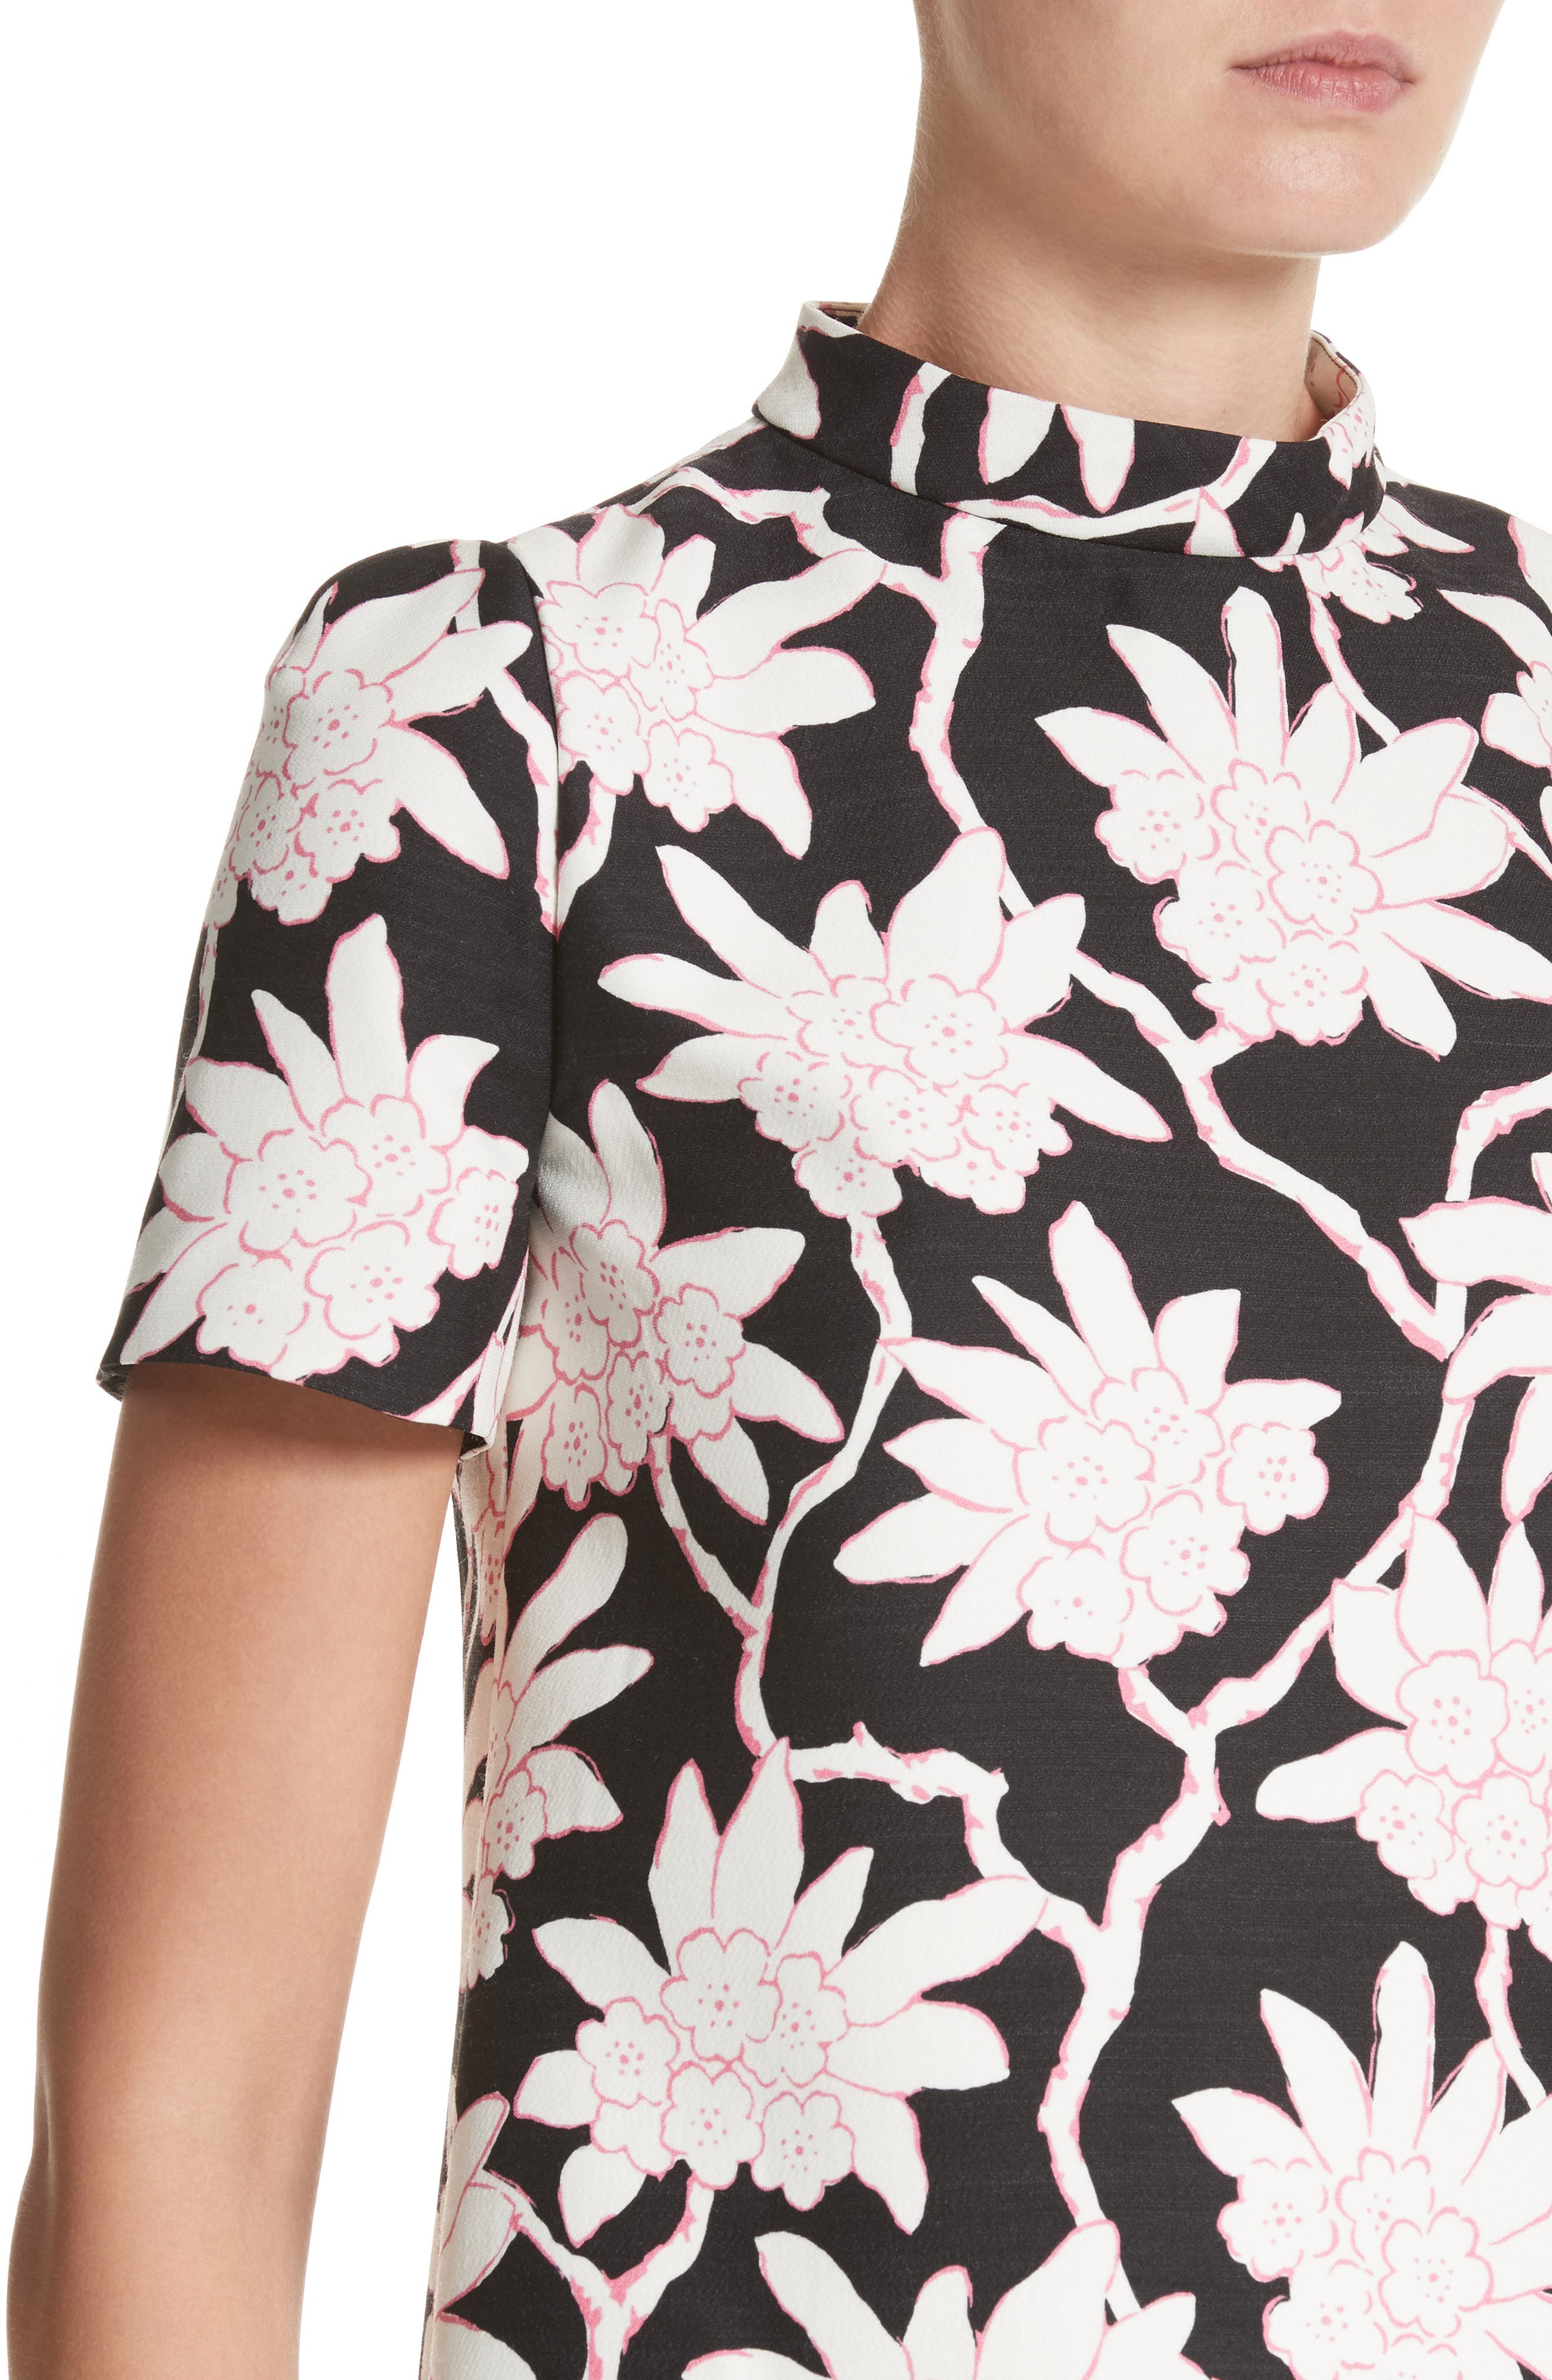 Rhododendron Print Wool & Silk Top,                             Alternate thumbnail 4, color,                             001